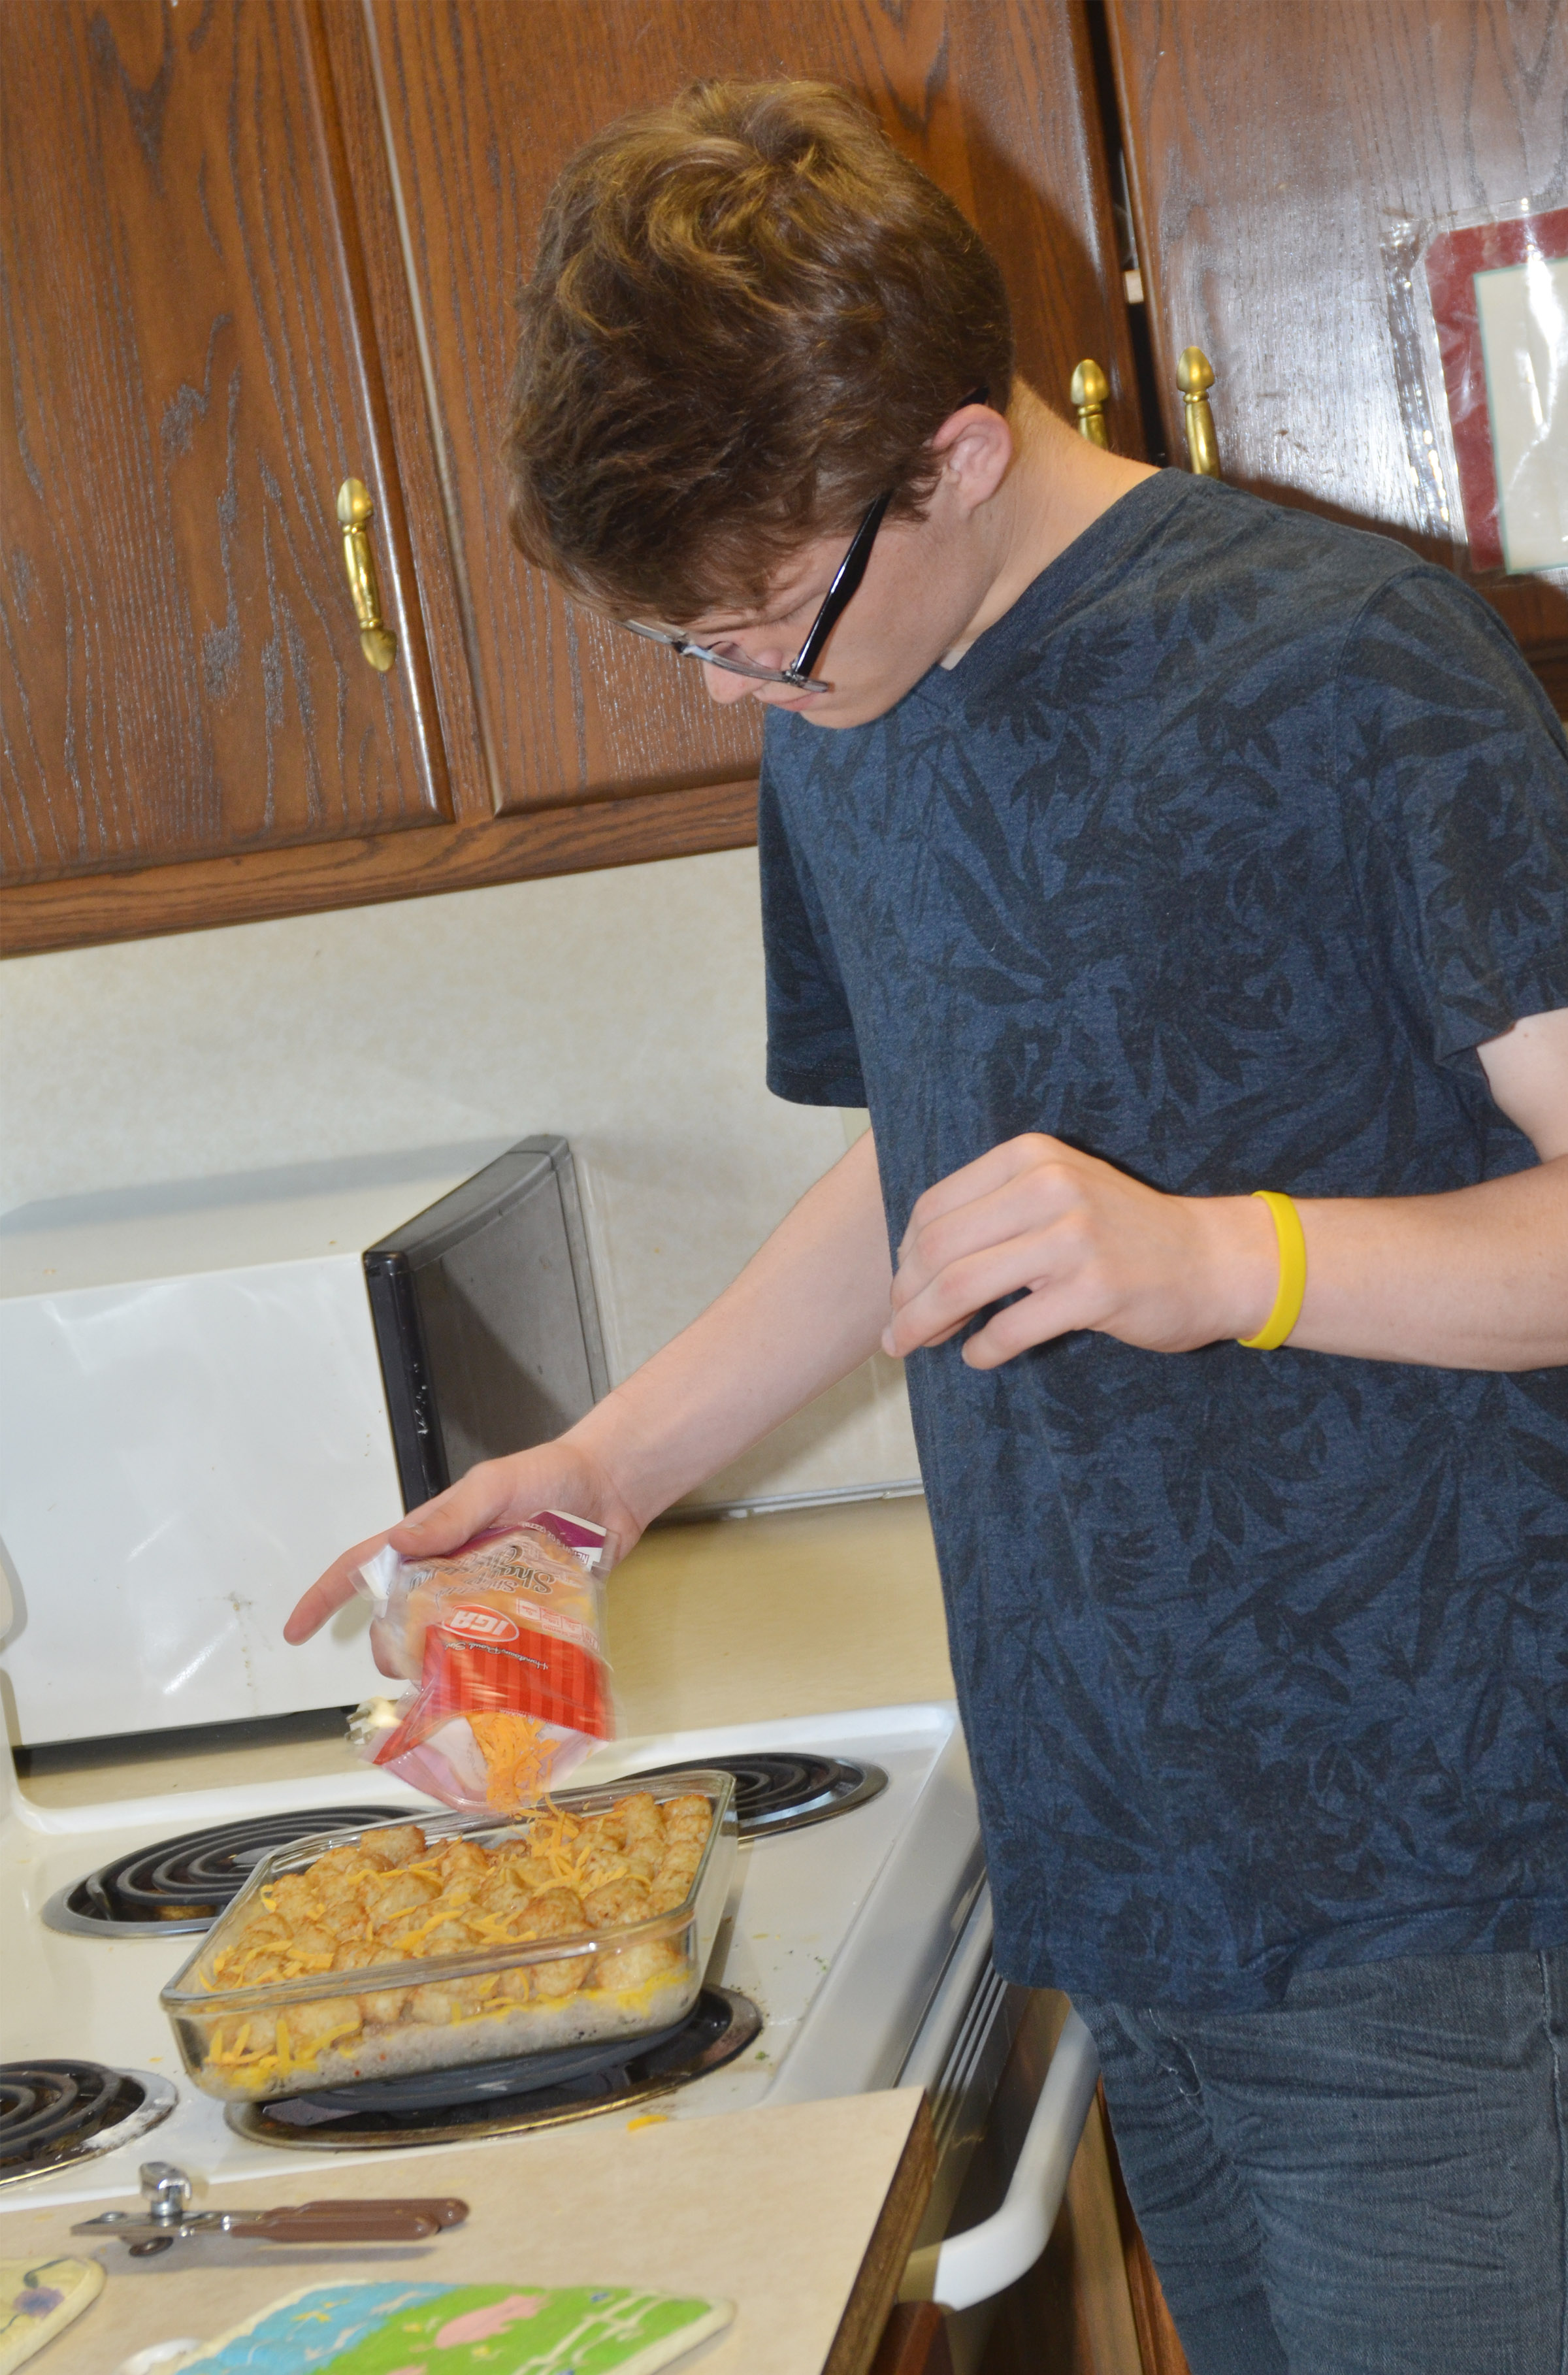 CHS sophomore Joe Pipes adds cheese to the breakfast casserole he made for his final project.